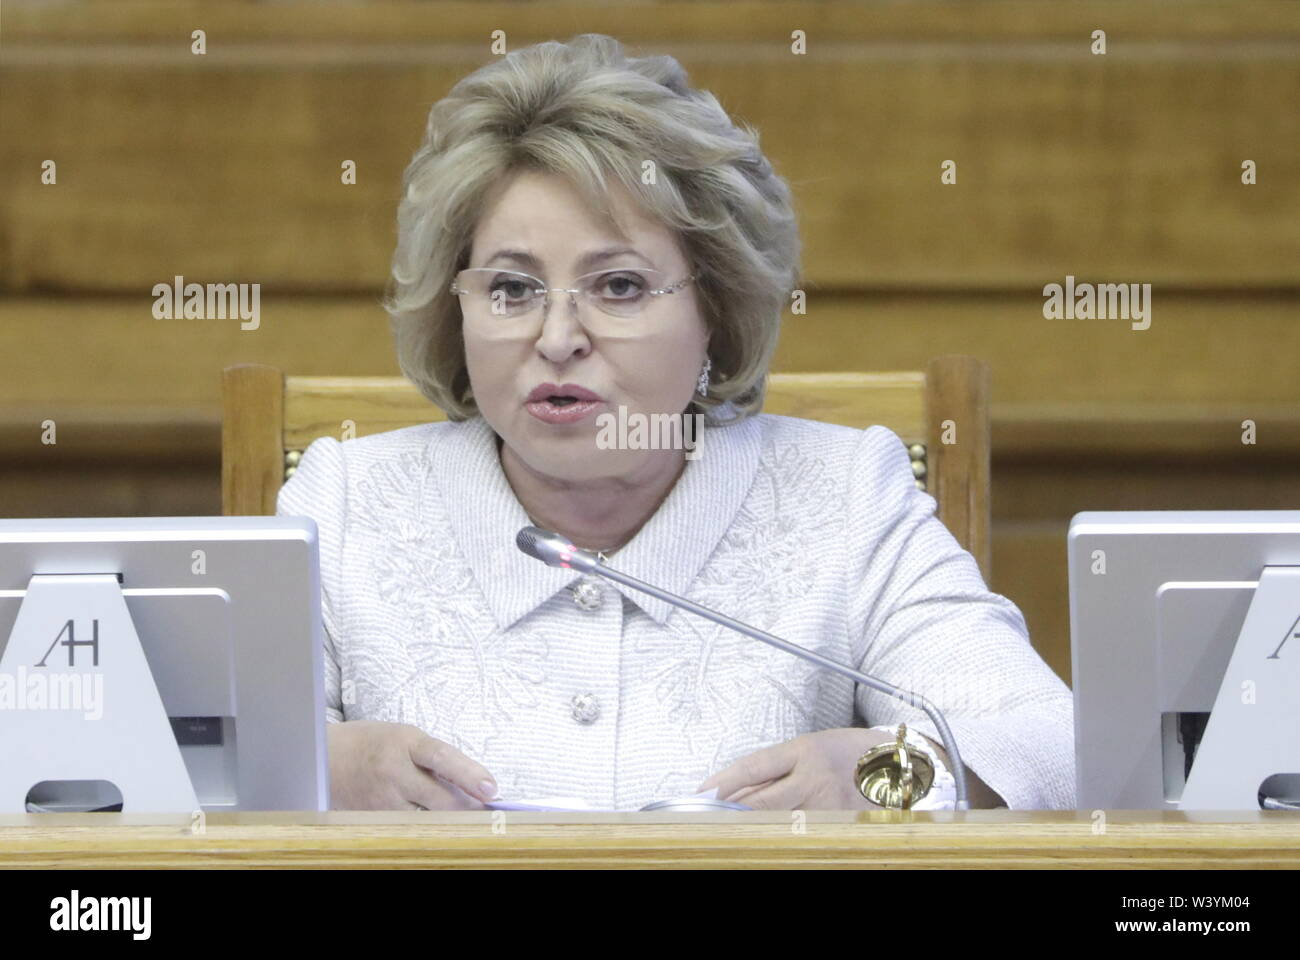 St Petersburg, Russia. 18th July, 2019. ST PETERSBURG, RUSSIA - JULY 18, 2019: Russian Federation Council Chairperson Valentina Matvienko addresses a plenary meeting at the 6th Belarus-Russia Forum of Regions, Tauride Palace. Mikhail Metzel/TASS Credit: ITAR-TASS News Agency/Alamy Live News - Stock Image